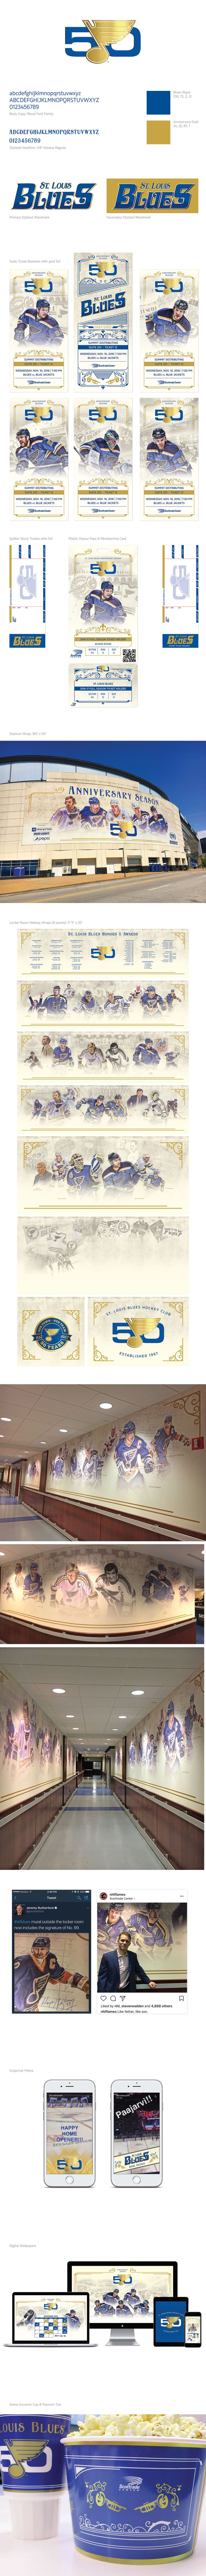 St. Louis Blues 50th Anniversary Campaign on Behance